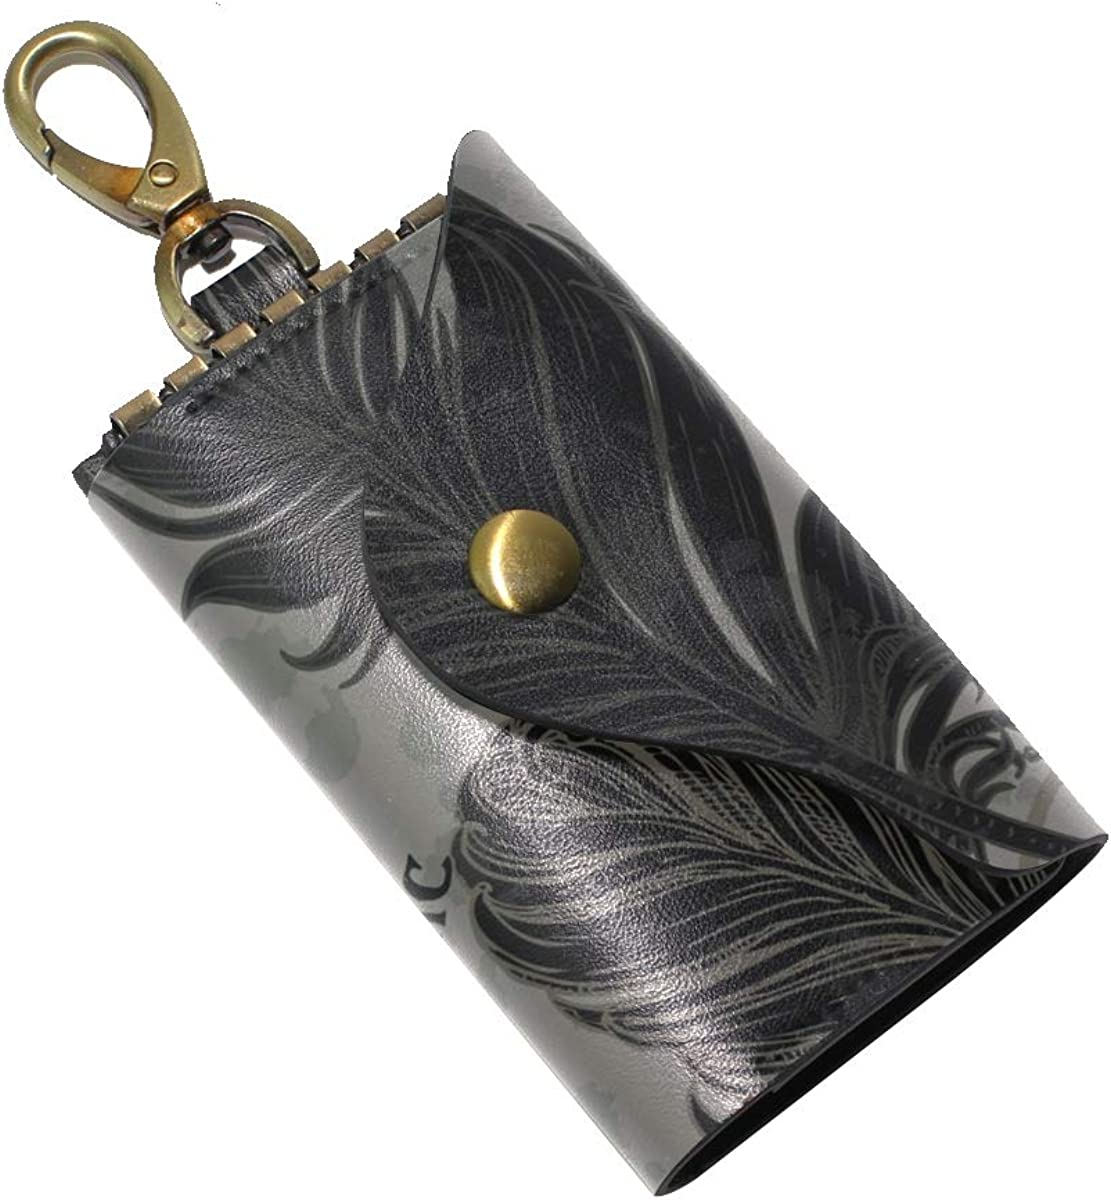 KEAKIA Bird Feathers Leather Key Case Wallets Tri-fold Key Holder Keychains with 6 Hooks 2 Slot Snap Closure for Men Women